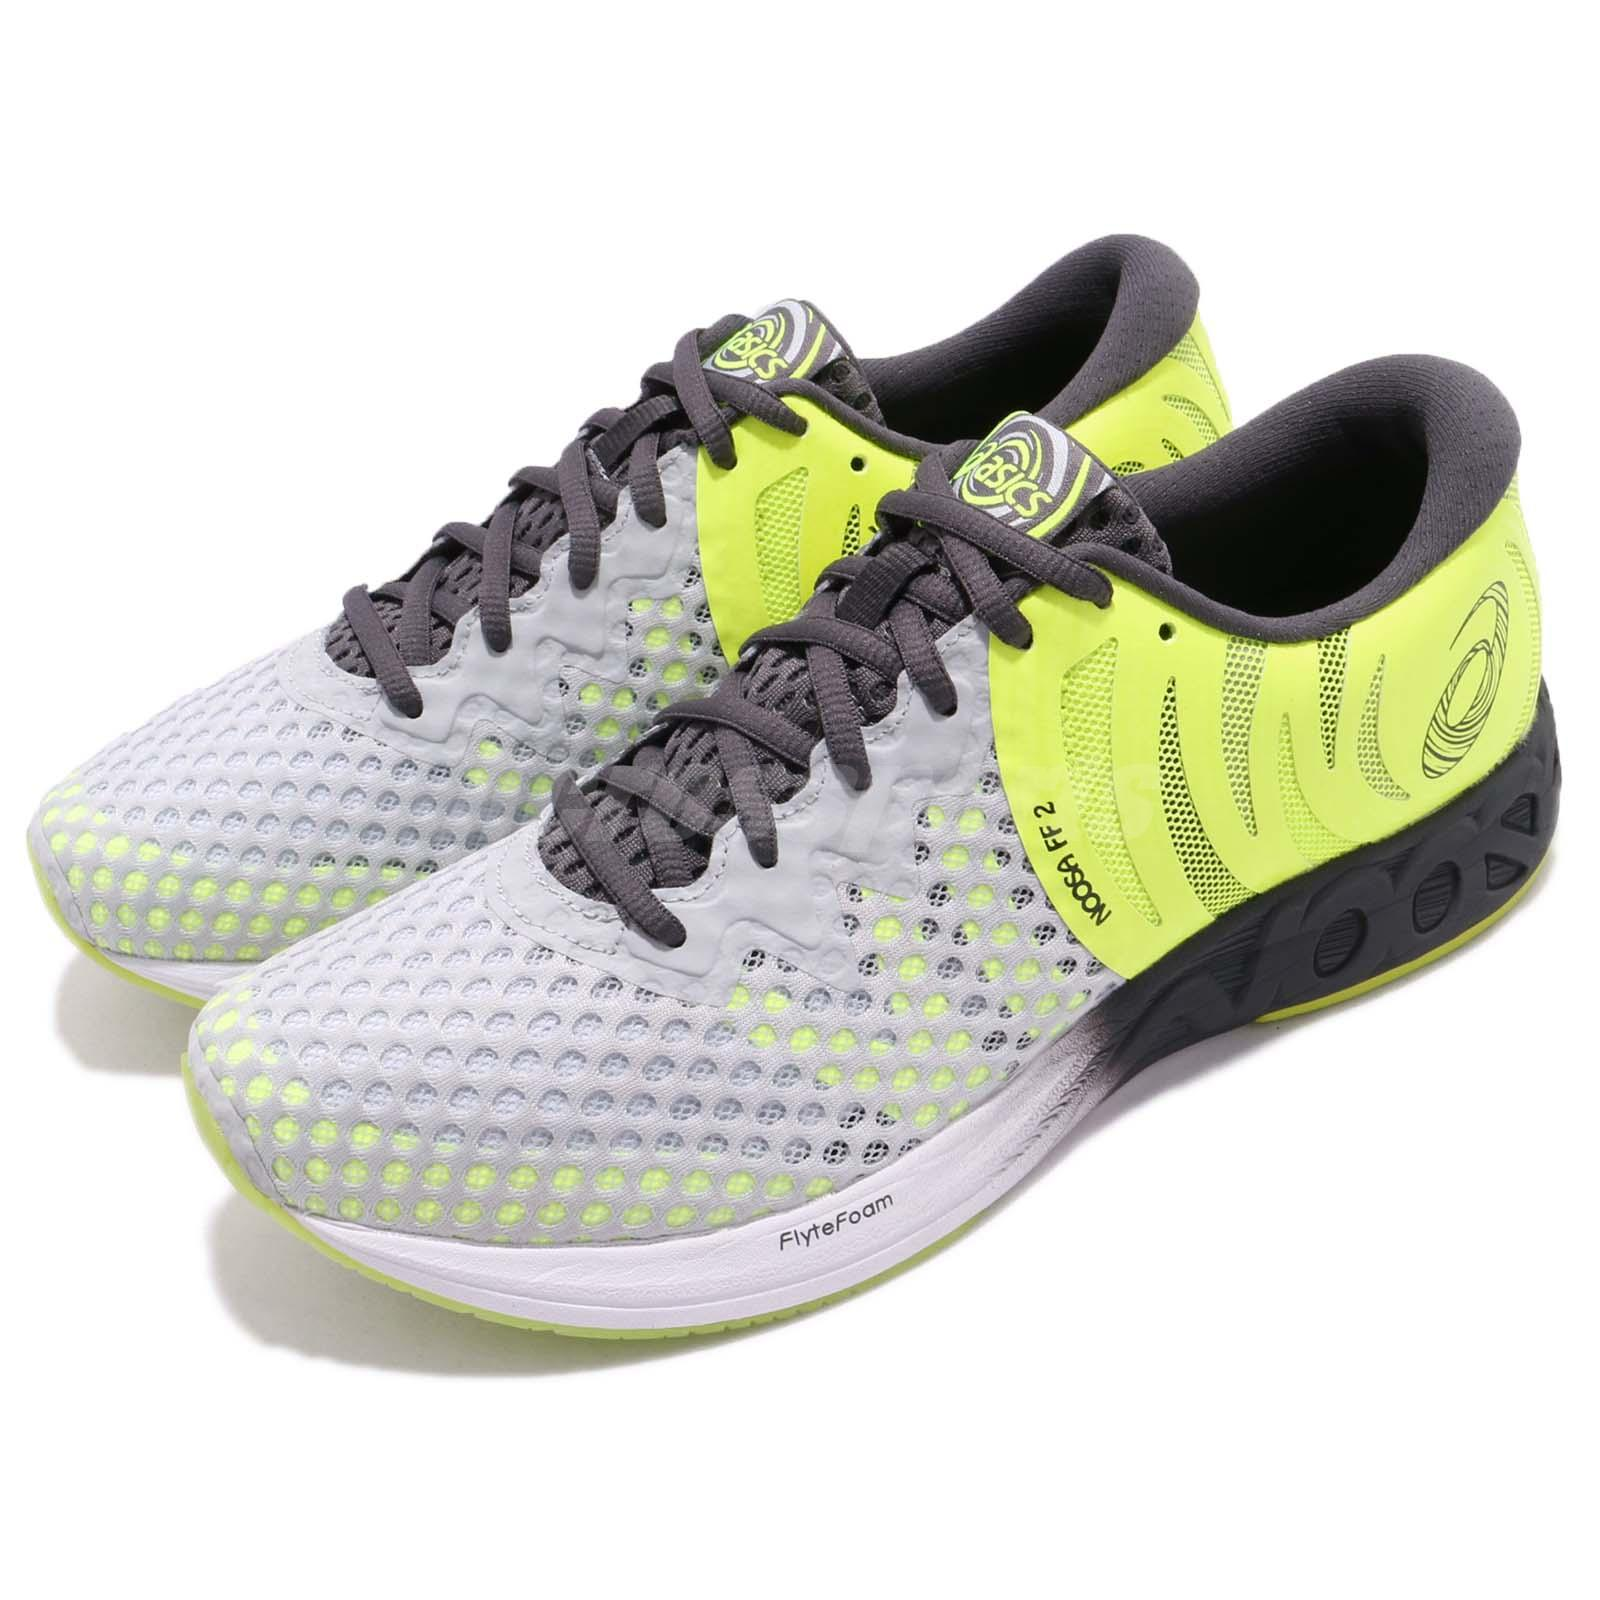 4e09669a18 Details about Asics Noosa FF 2 II Grey Yellow White Men Gear Fast Running  Shoes T819N-9695